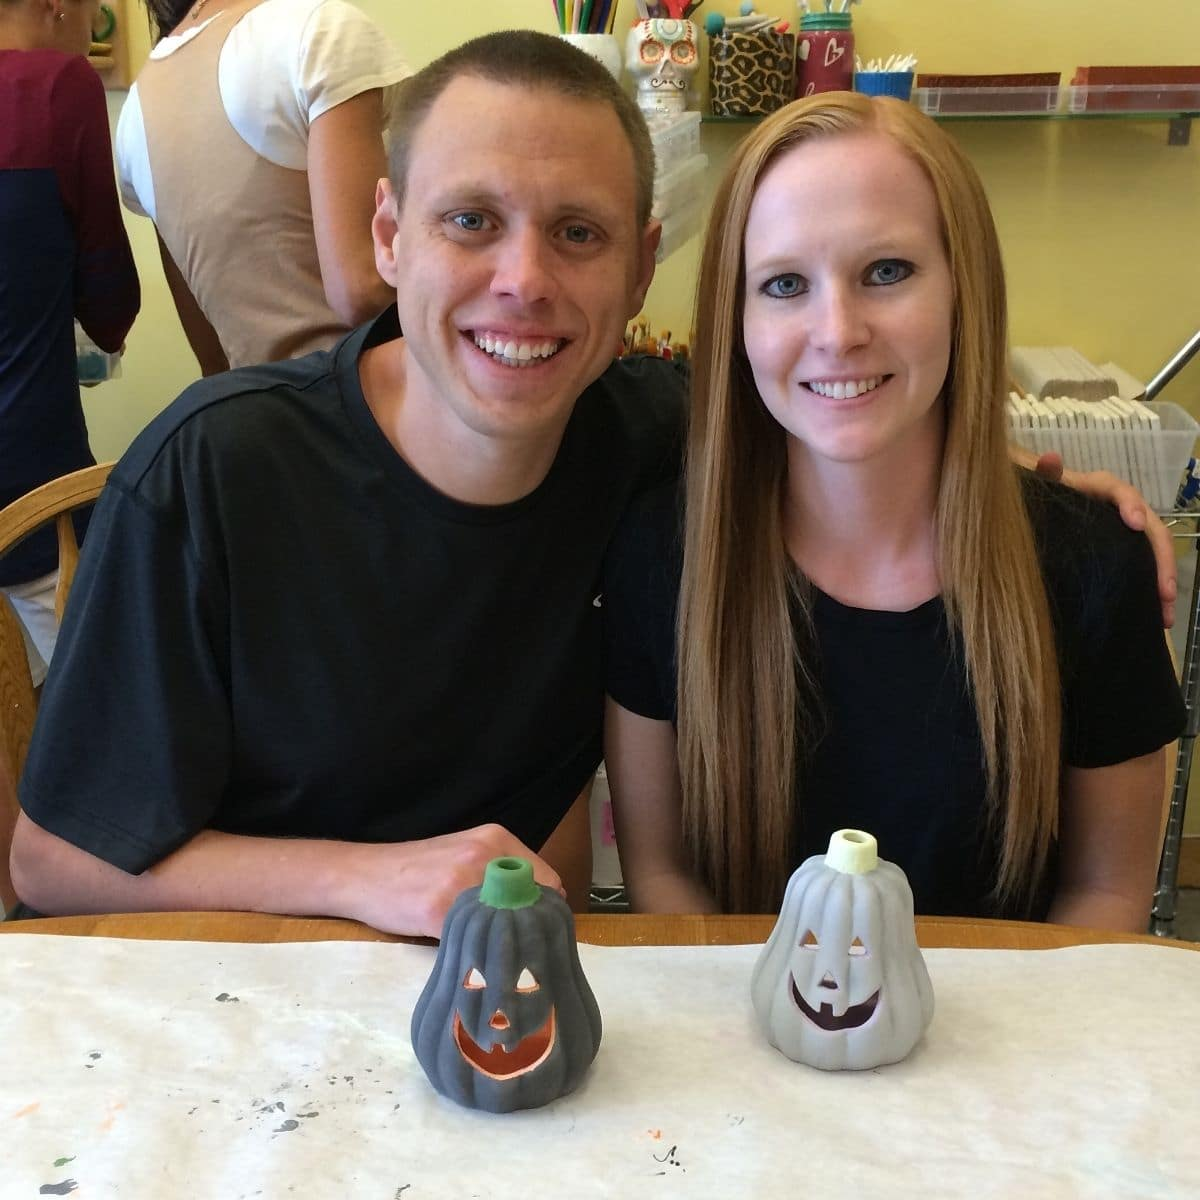 adam and liz at color me mine with their painted pumpkins